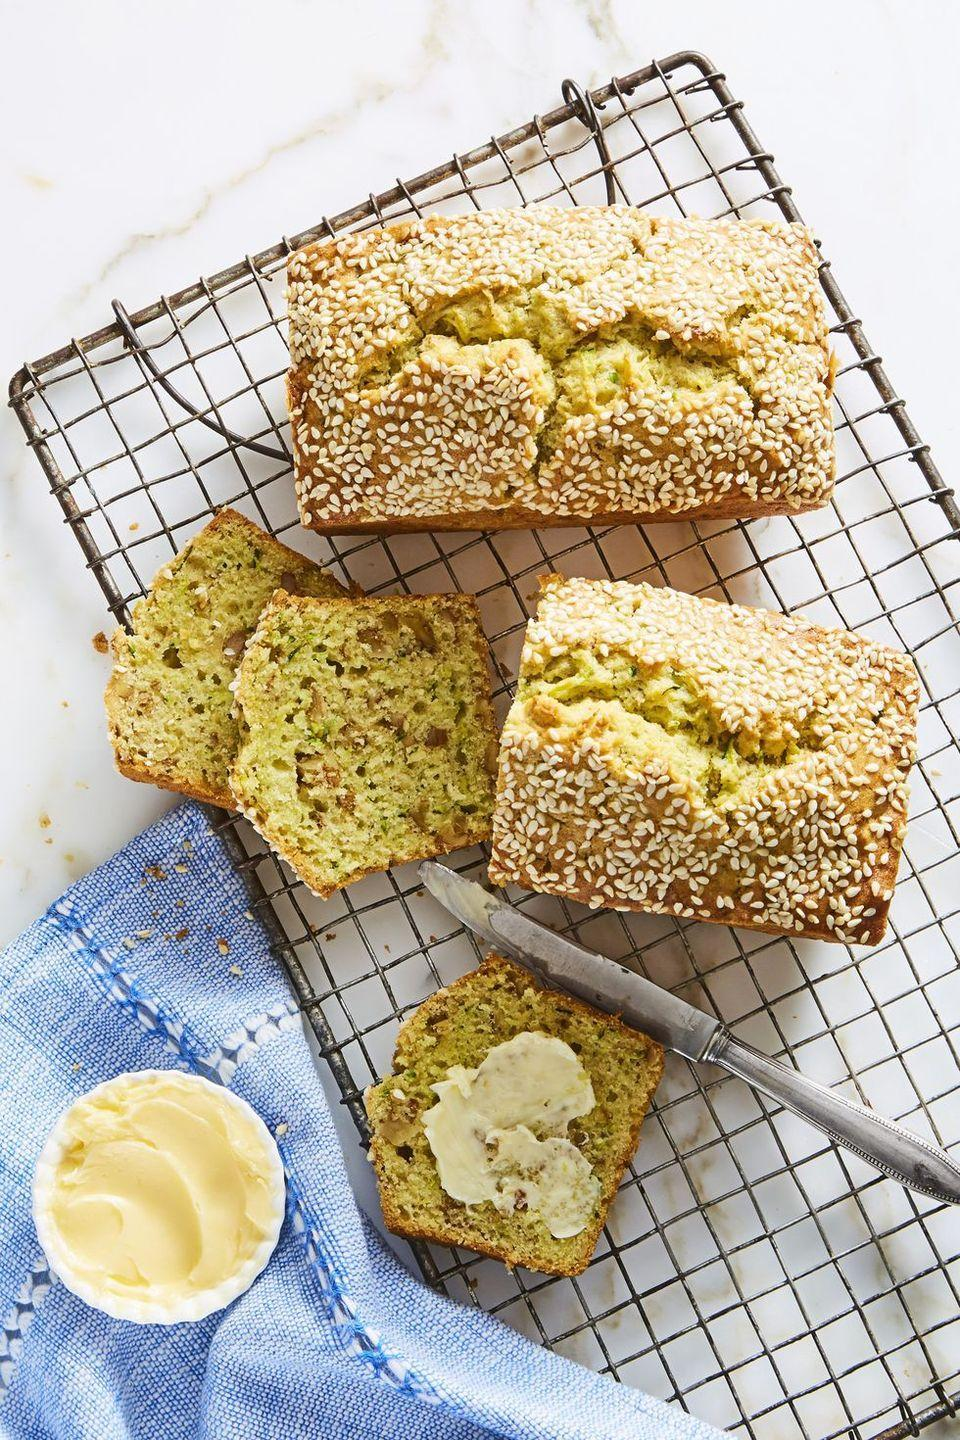 """<p>Make 'em mini so dad gets his own loaf. Don't forget the butter!</p><p><em><a href=""""https://www.goodhousekeeping.com/food-recipes/easy/a22576509/mini-sesame-zucchini-loaves-recipe/"""" rel=""""nofollow noopener"""" target=""""_blank"""" data-ylk=""""slk:Get the recipe for Mini Sesame Zucchini Loaves »"""" class=""""link rapid-noclick-resp"""">Get the recipe for Mini Sesame Zucchini Loaves »</a></em></p>"""